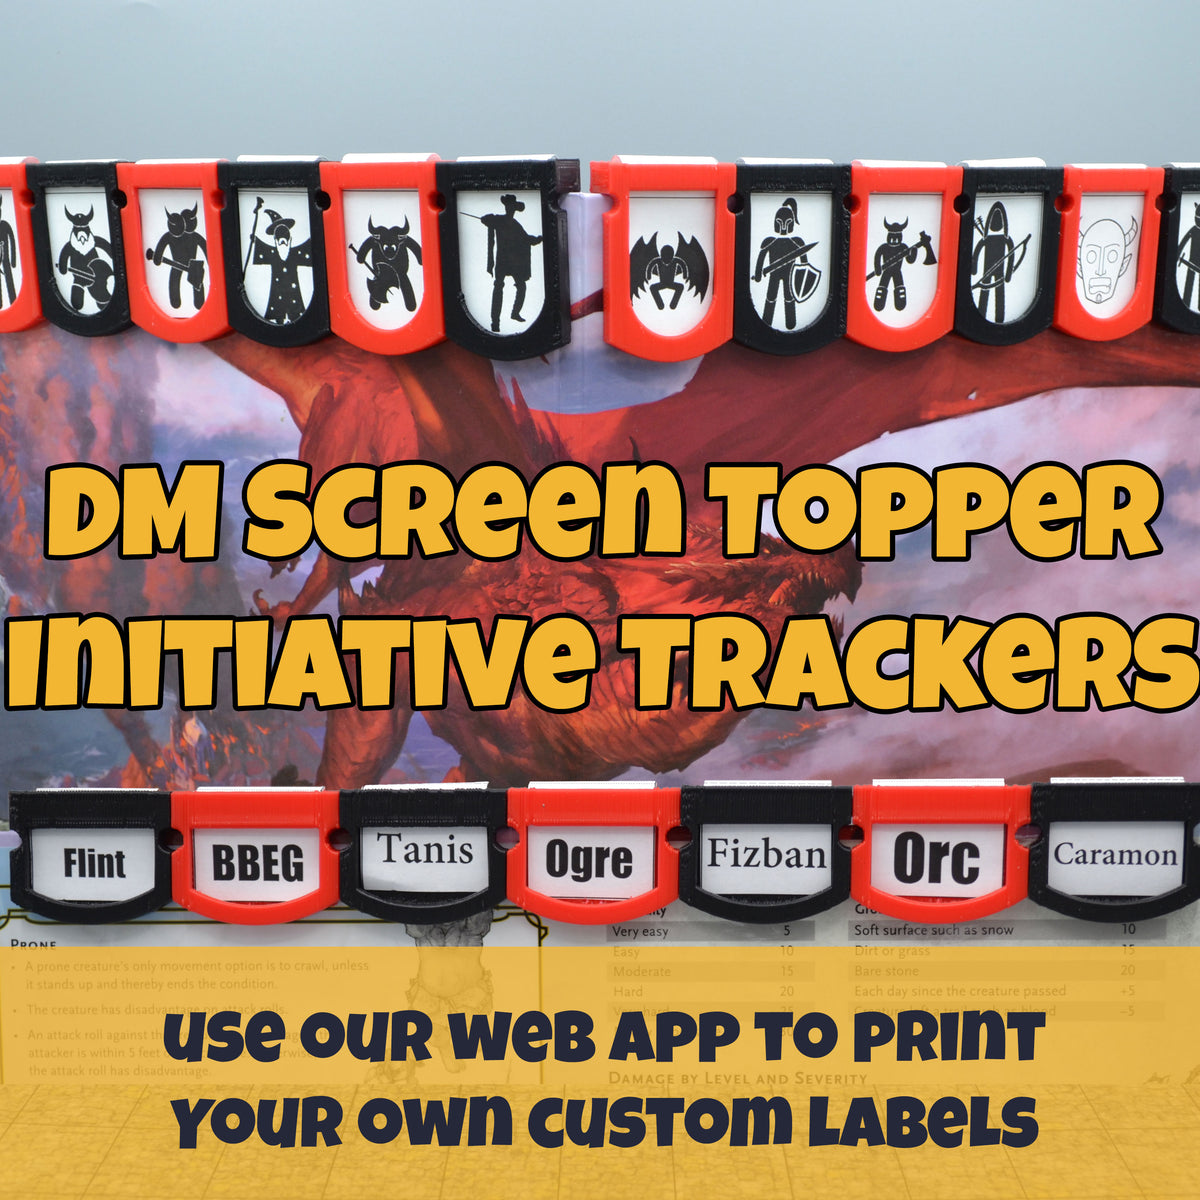 dnd initiative tracker